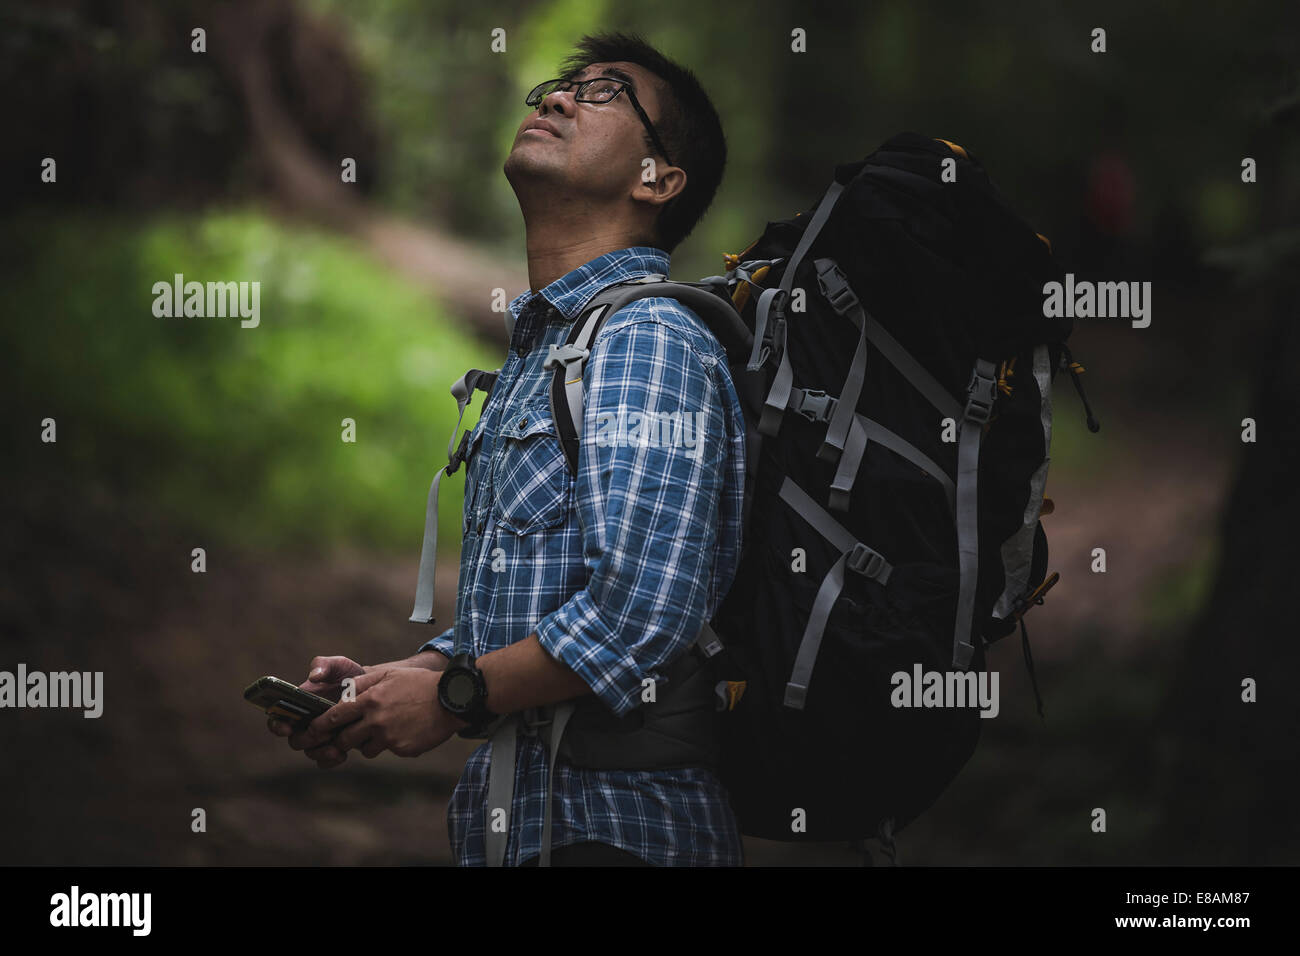 Hiker with backpack and smart phone, looking up - Stock Image